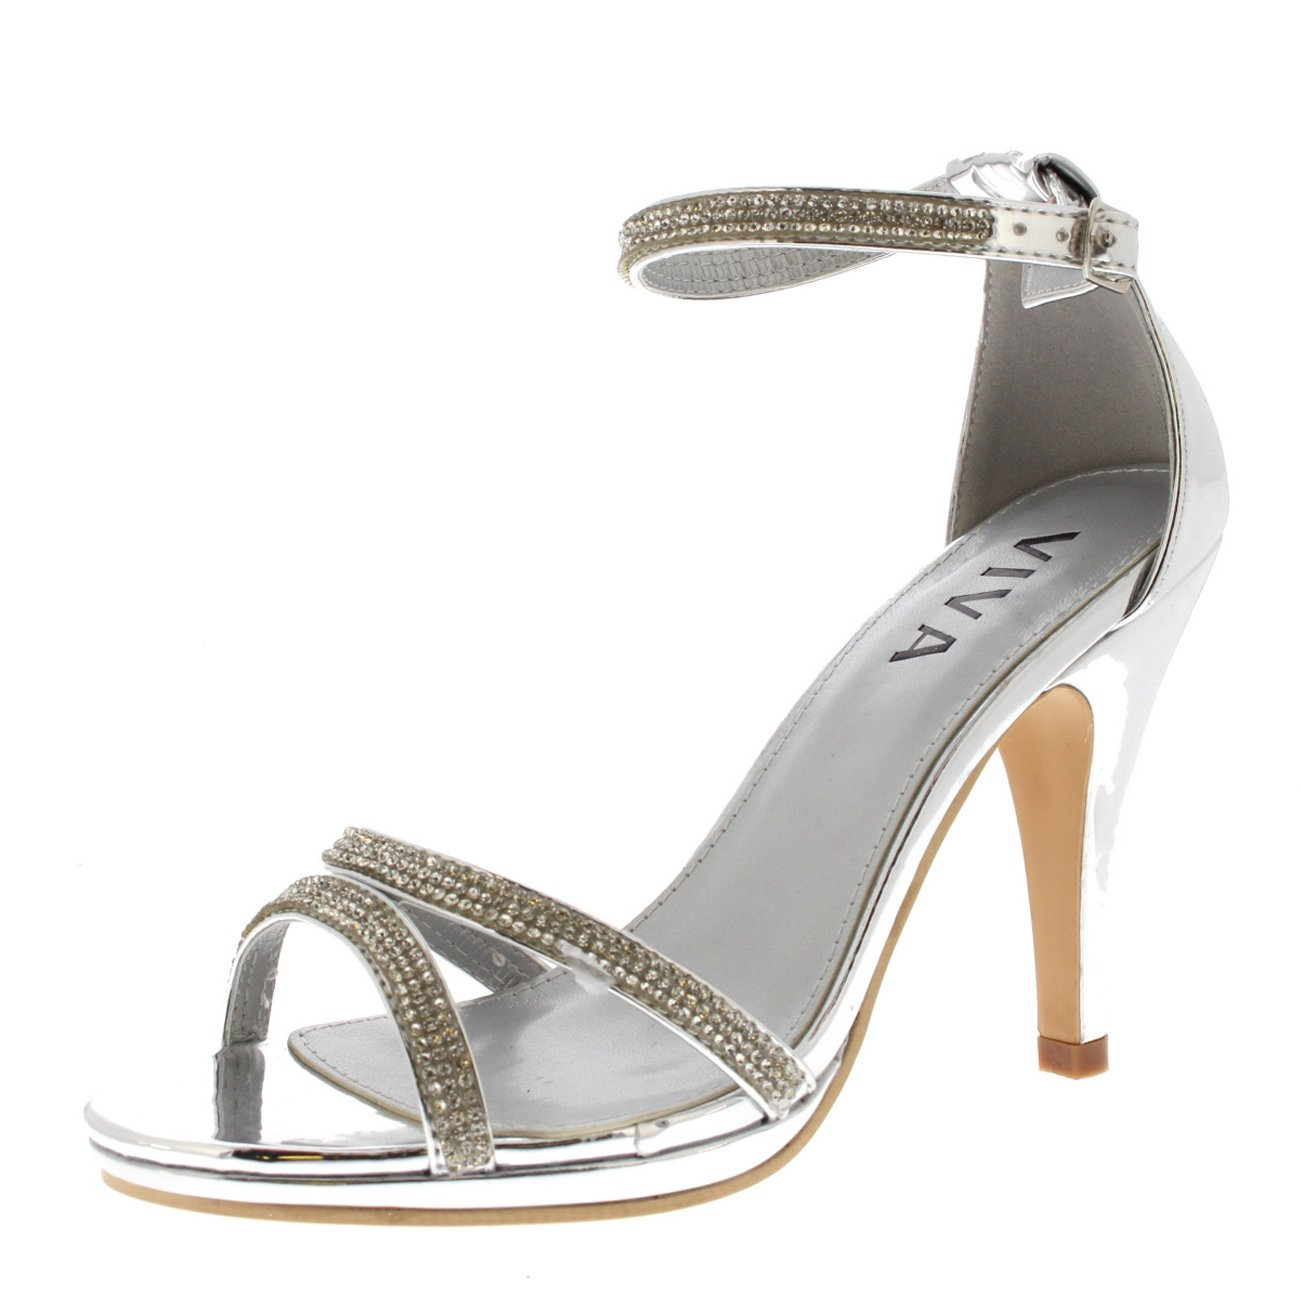 1e4b943cd354 Viva Womens Diamante Mid Heel Ankle Strap Wedding Party Metallic Sandals  Shoes  Amazon.co.uk  Shoes   Bags